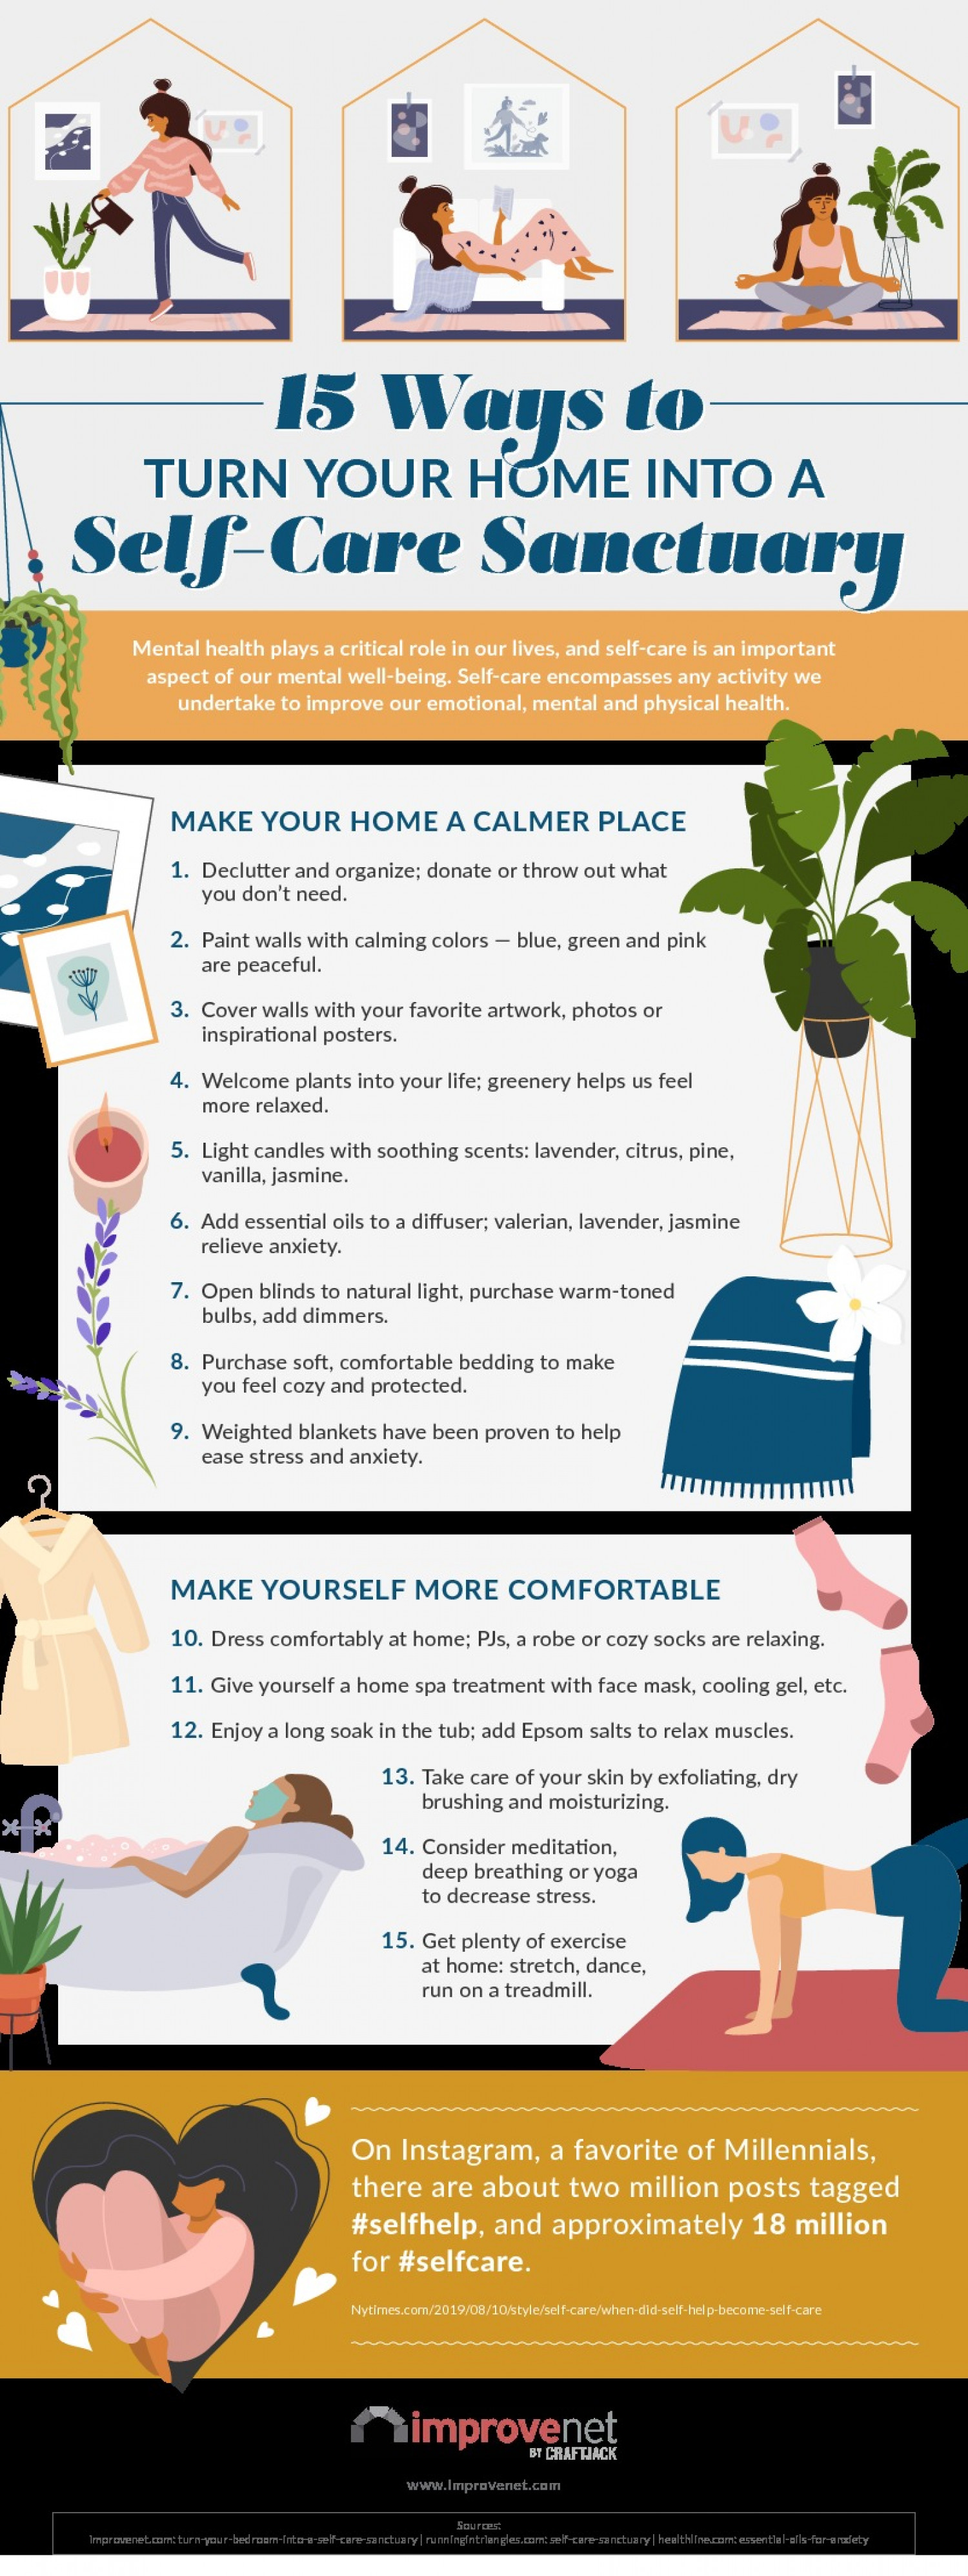 Practicing Self-Care at Home [Infographic]